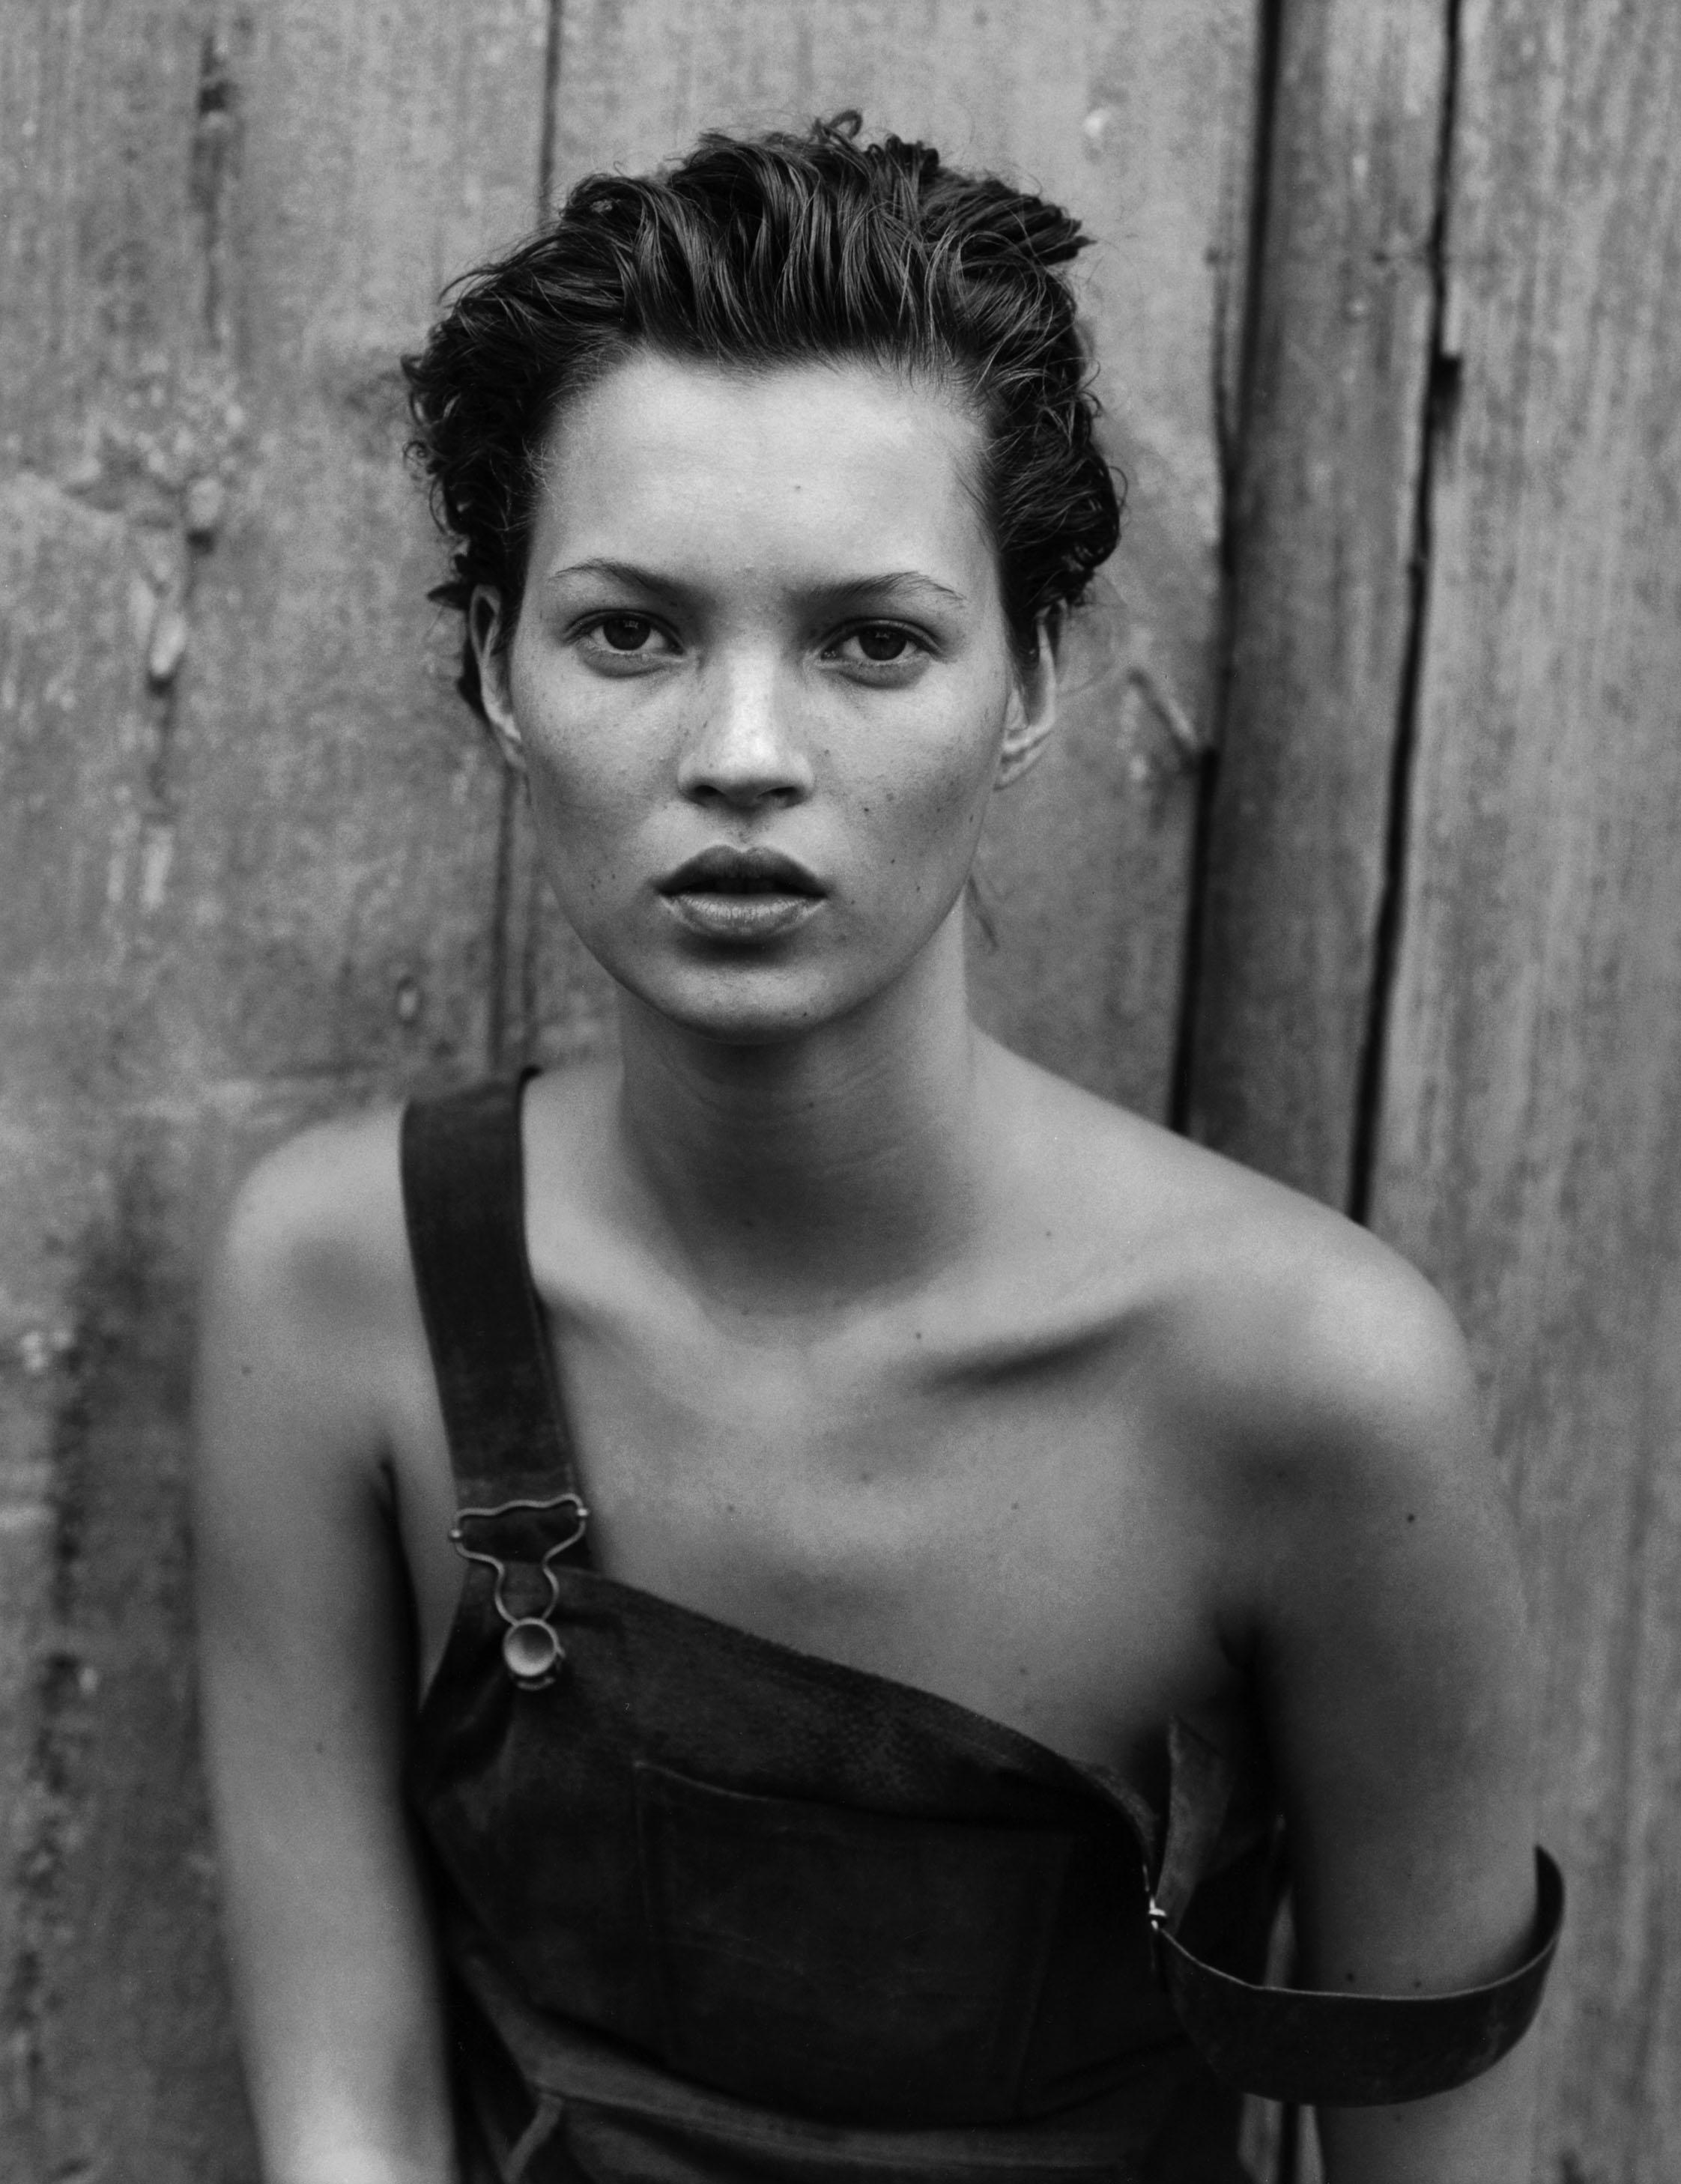 Kate Moss Is The Queen Of Cool On 37th Vogue Uk Cover: 8 Week Portrait Class: Four; Peter Lindbergh